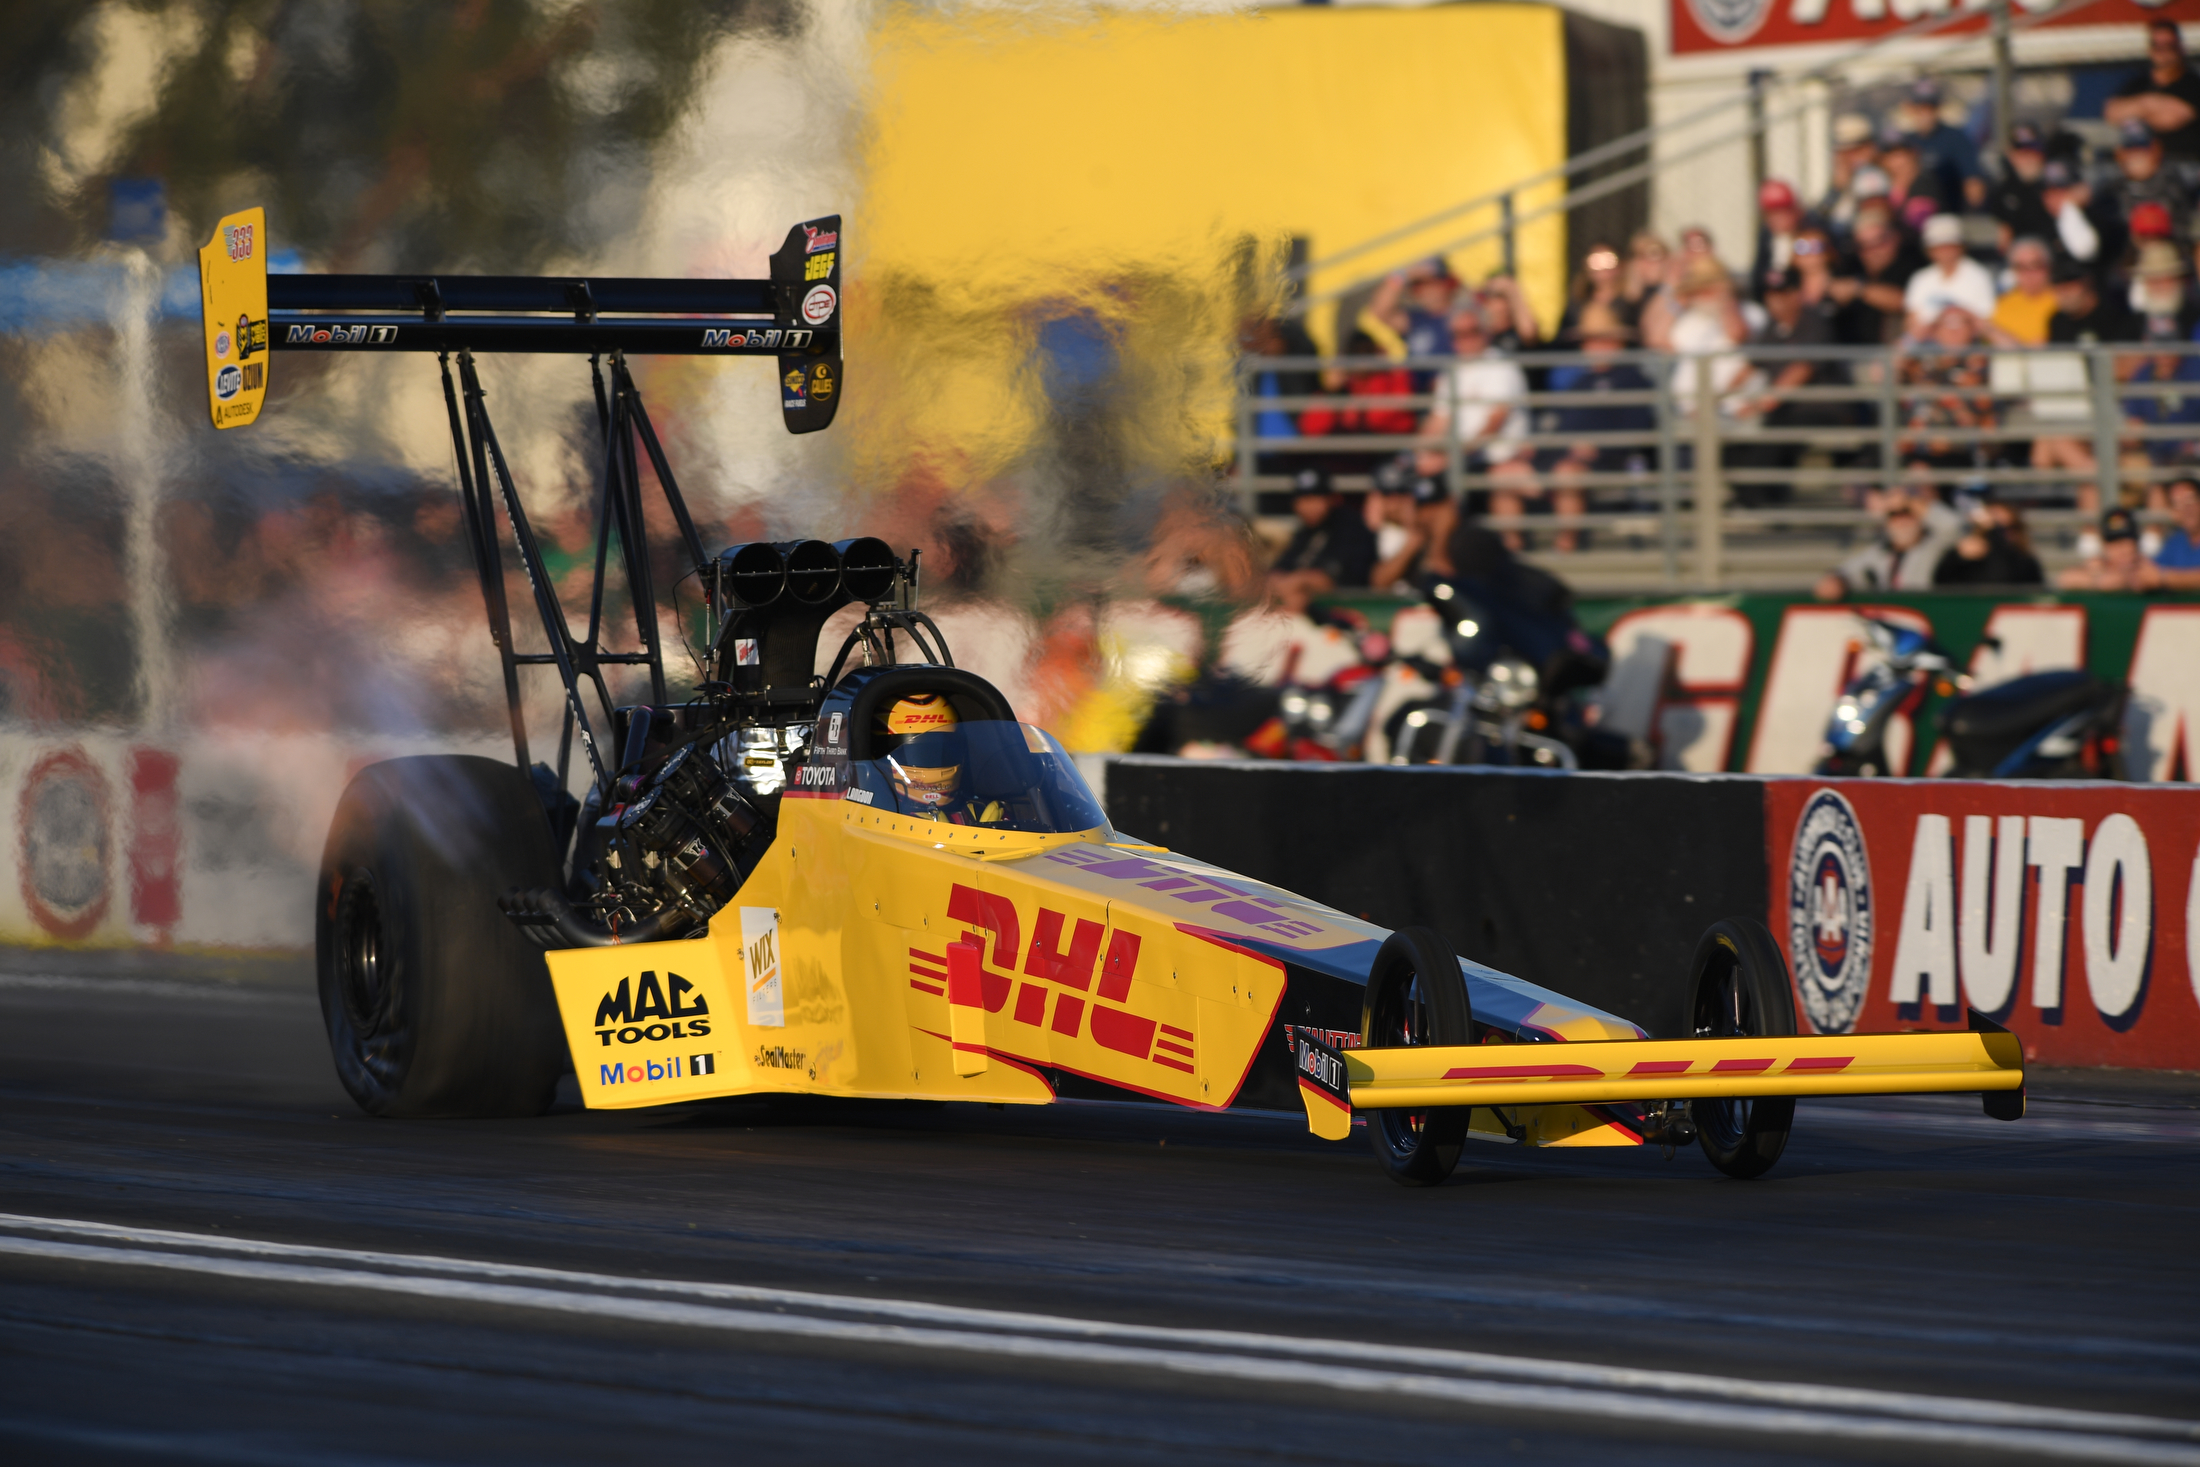 DHL Top Fuel Dragster pilot Shawn Langdon racing on Friday at the 60th annual Lucas Oil NHRA Winternationals presented by ProtectTheHarvest.com